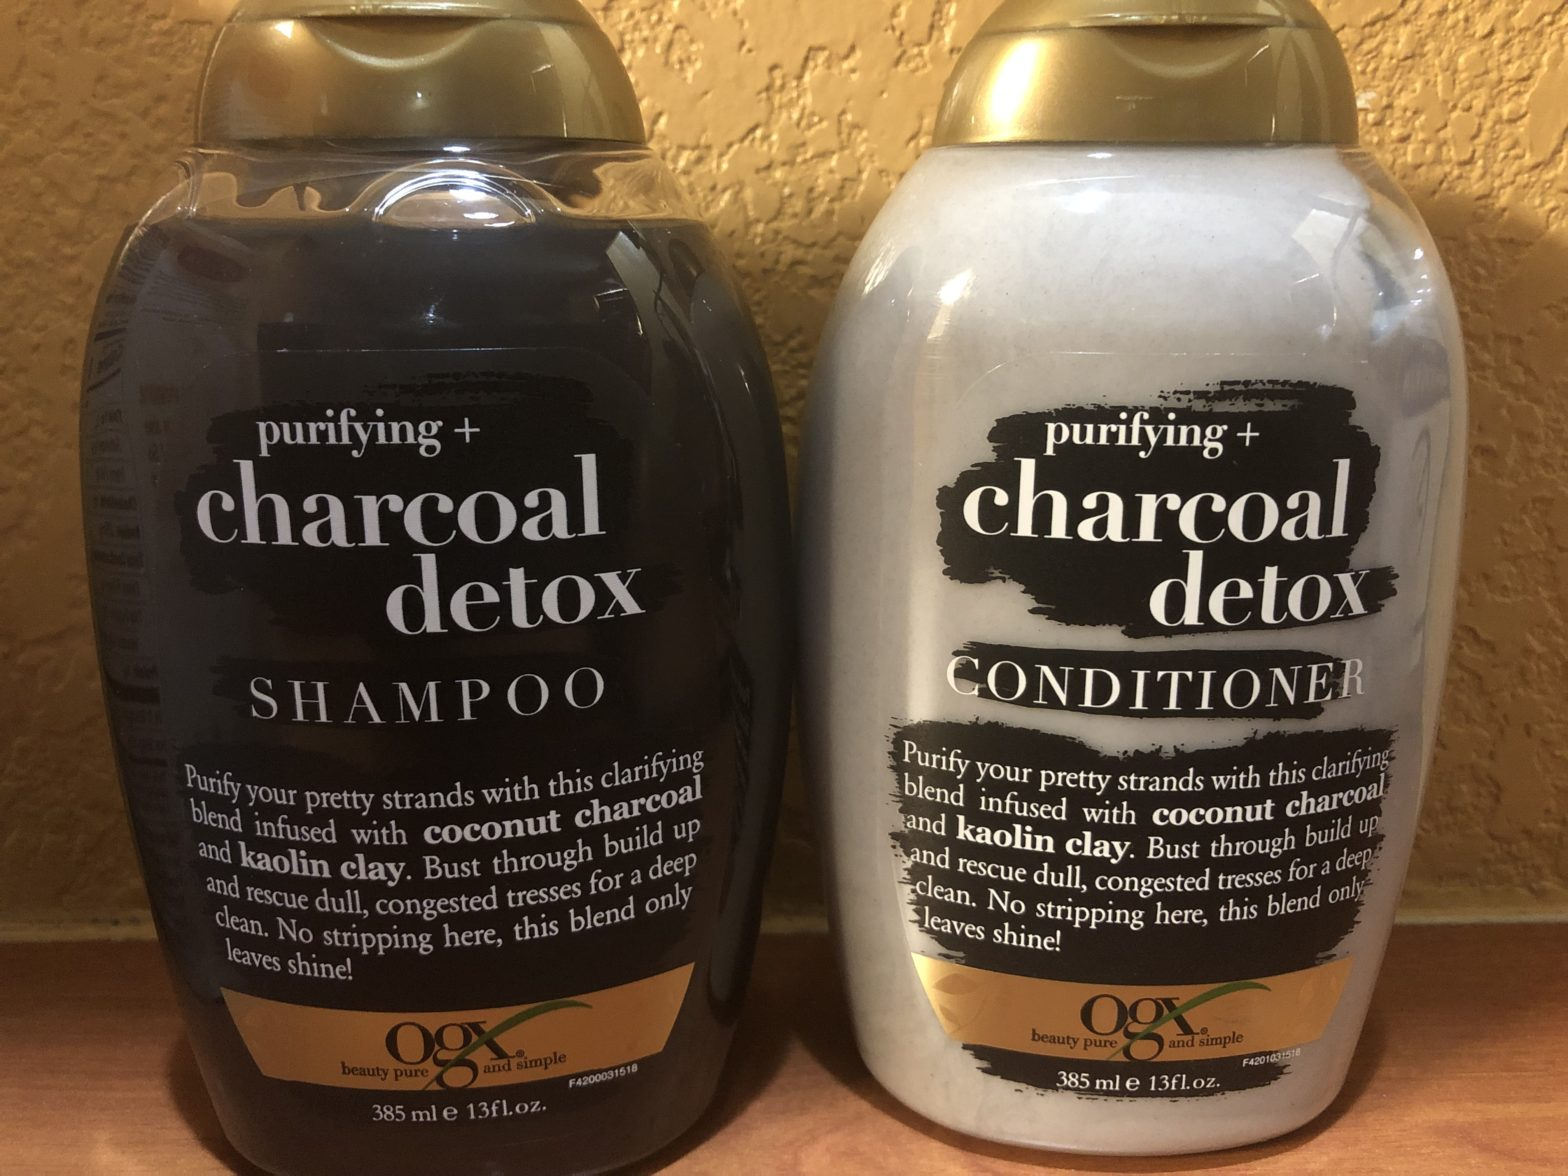 OGX Charcoal Detox Shampoo and Conditioner